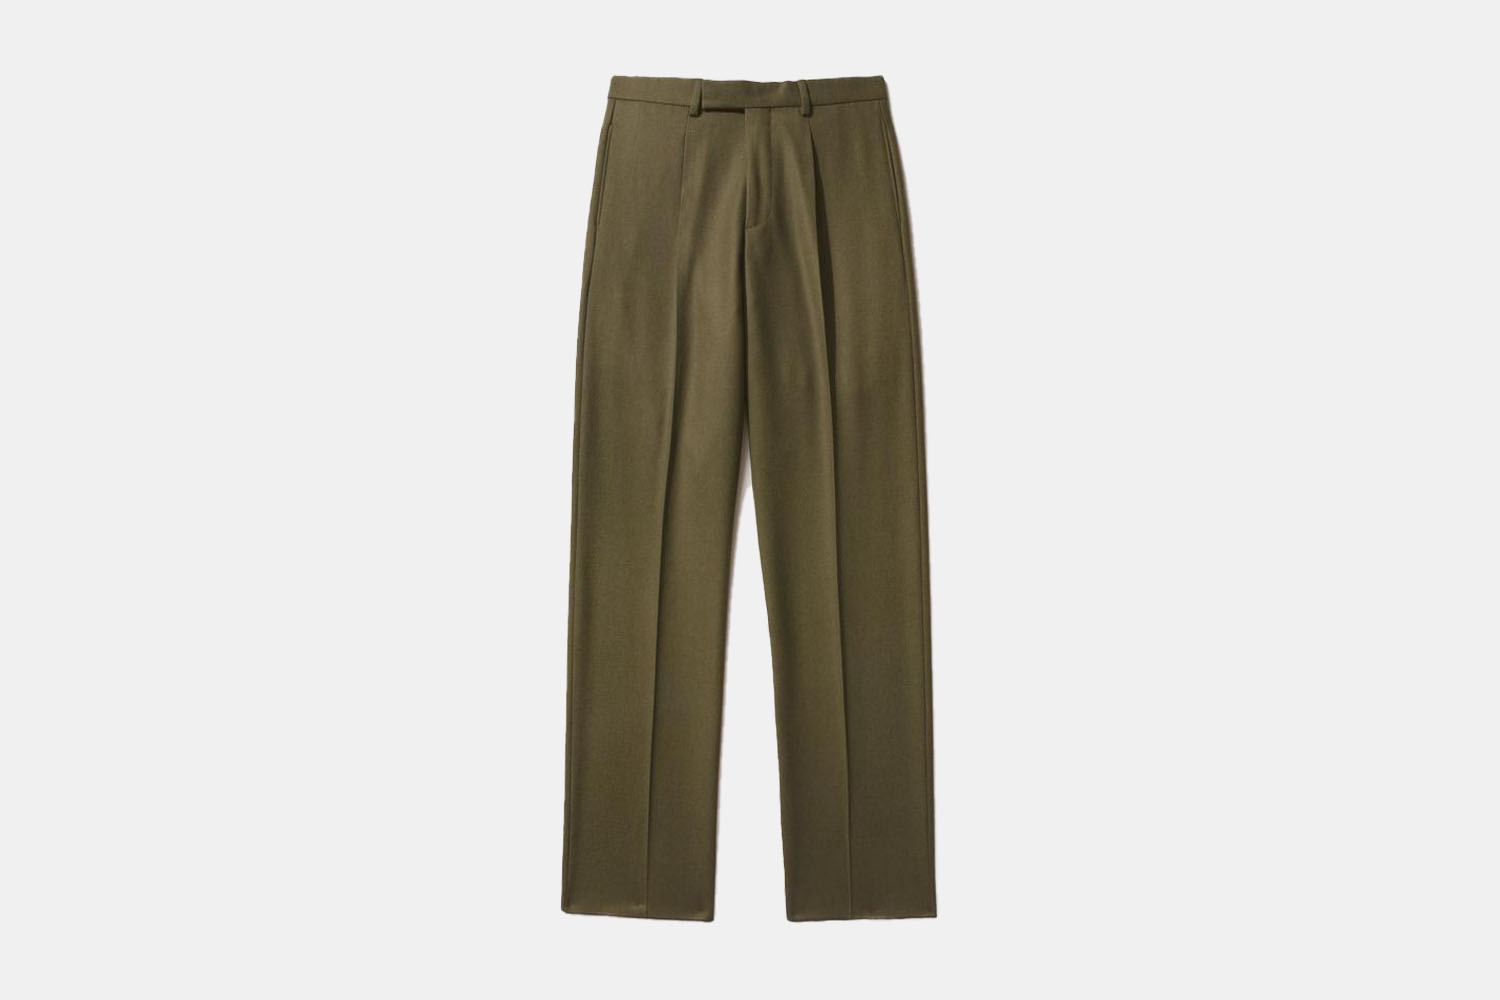 a pair of olive green, single pleated trousers.